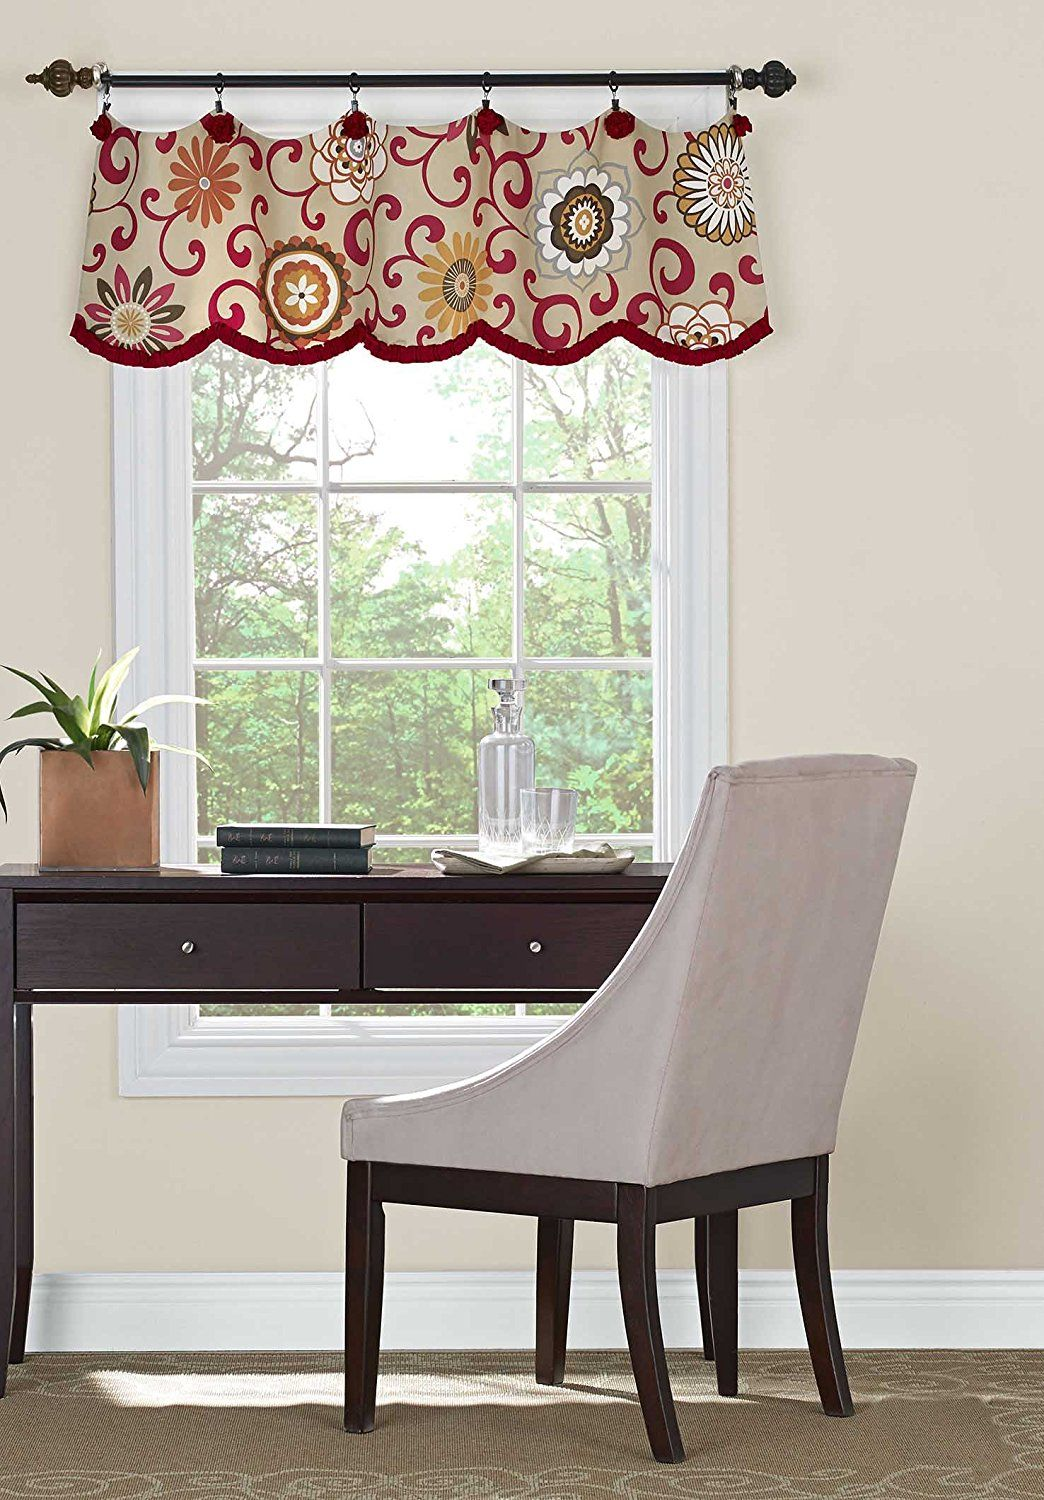 Simplicity Creative Patterns 1383 Valances For 36 Inch To 40 Inch